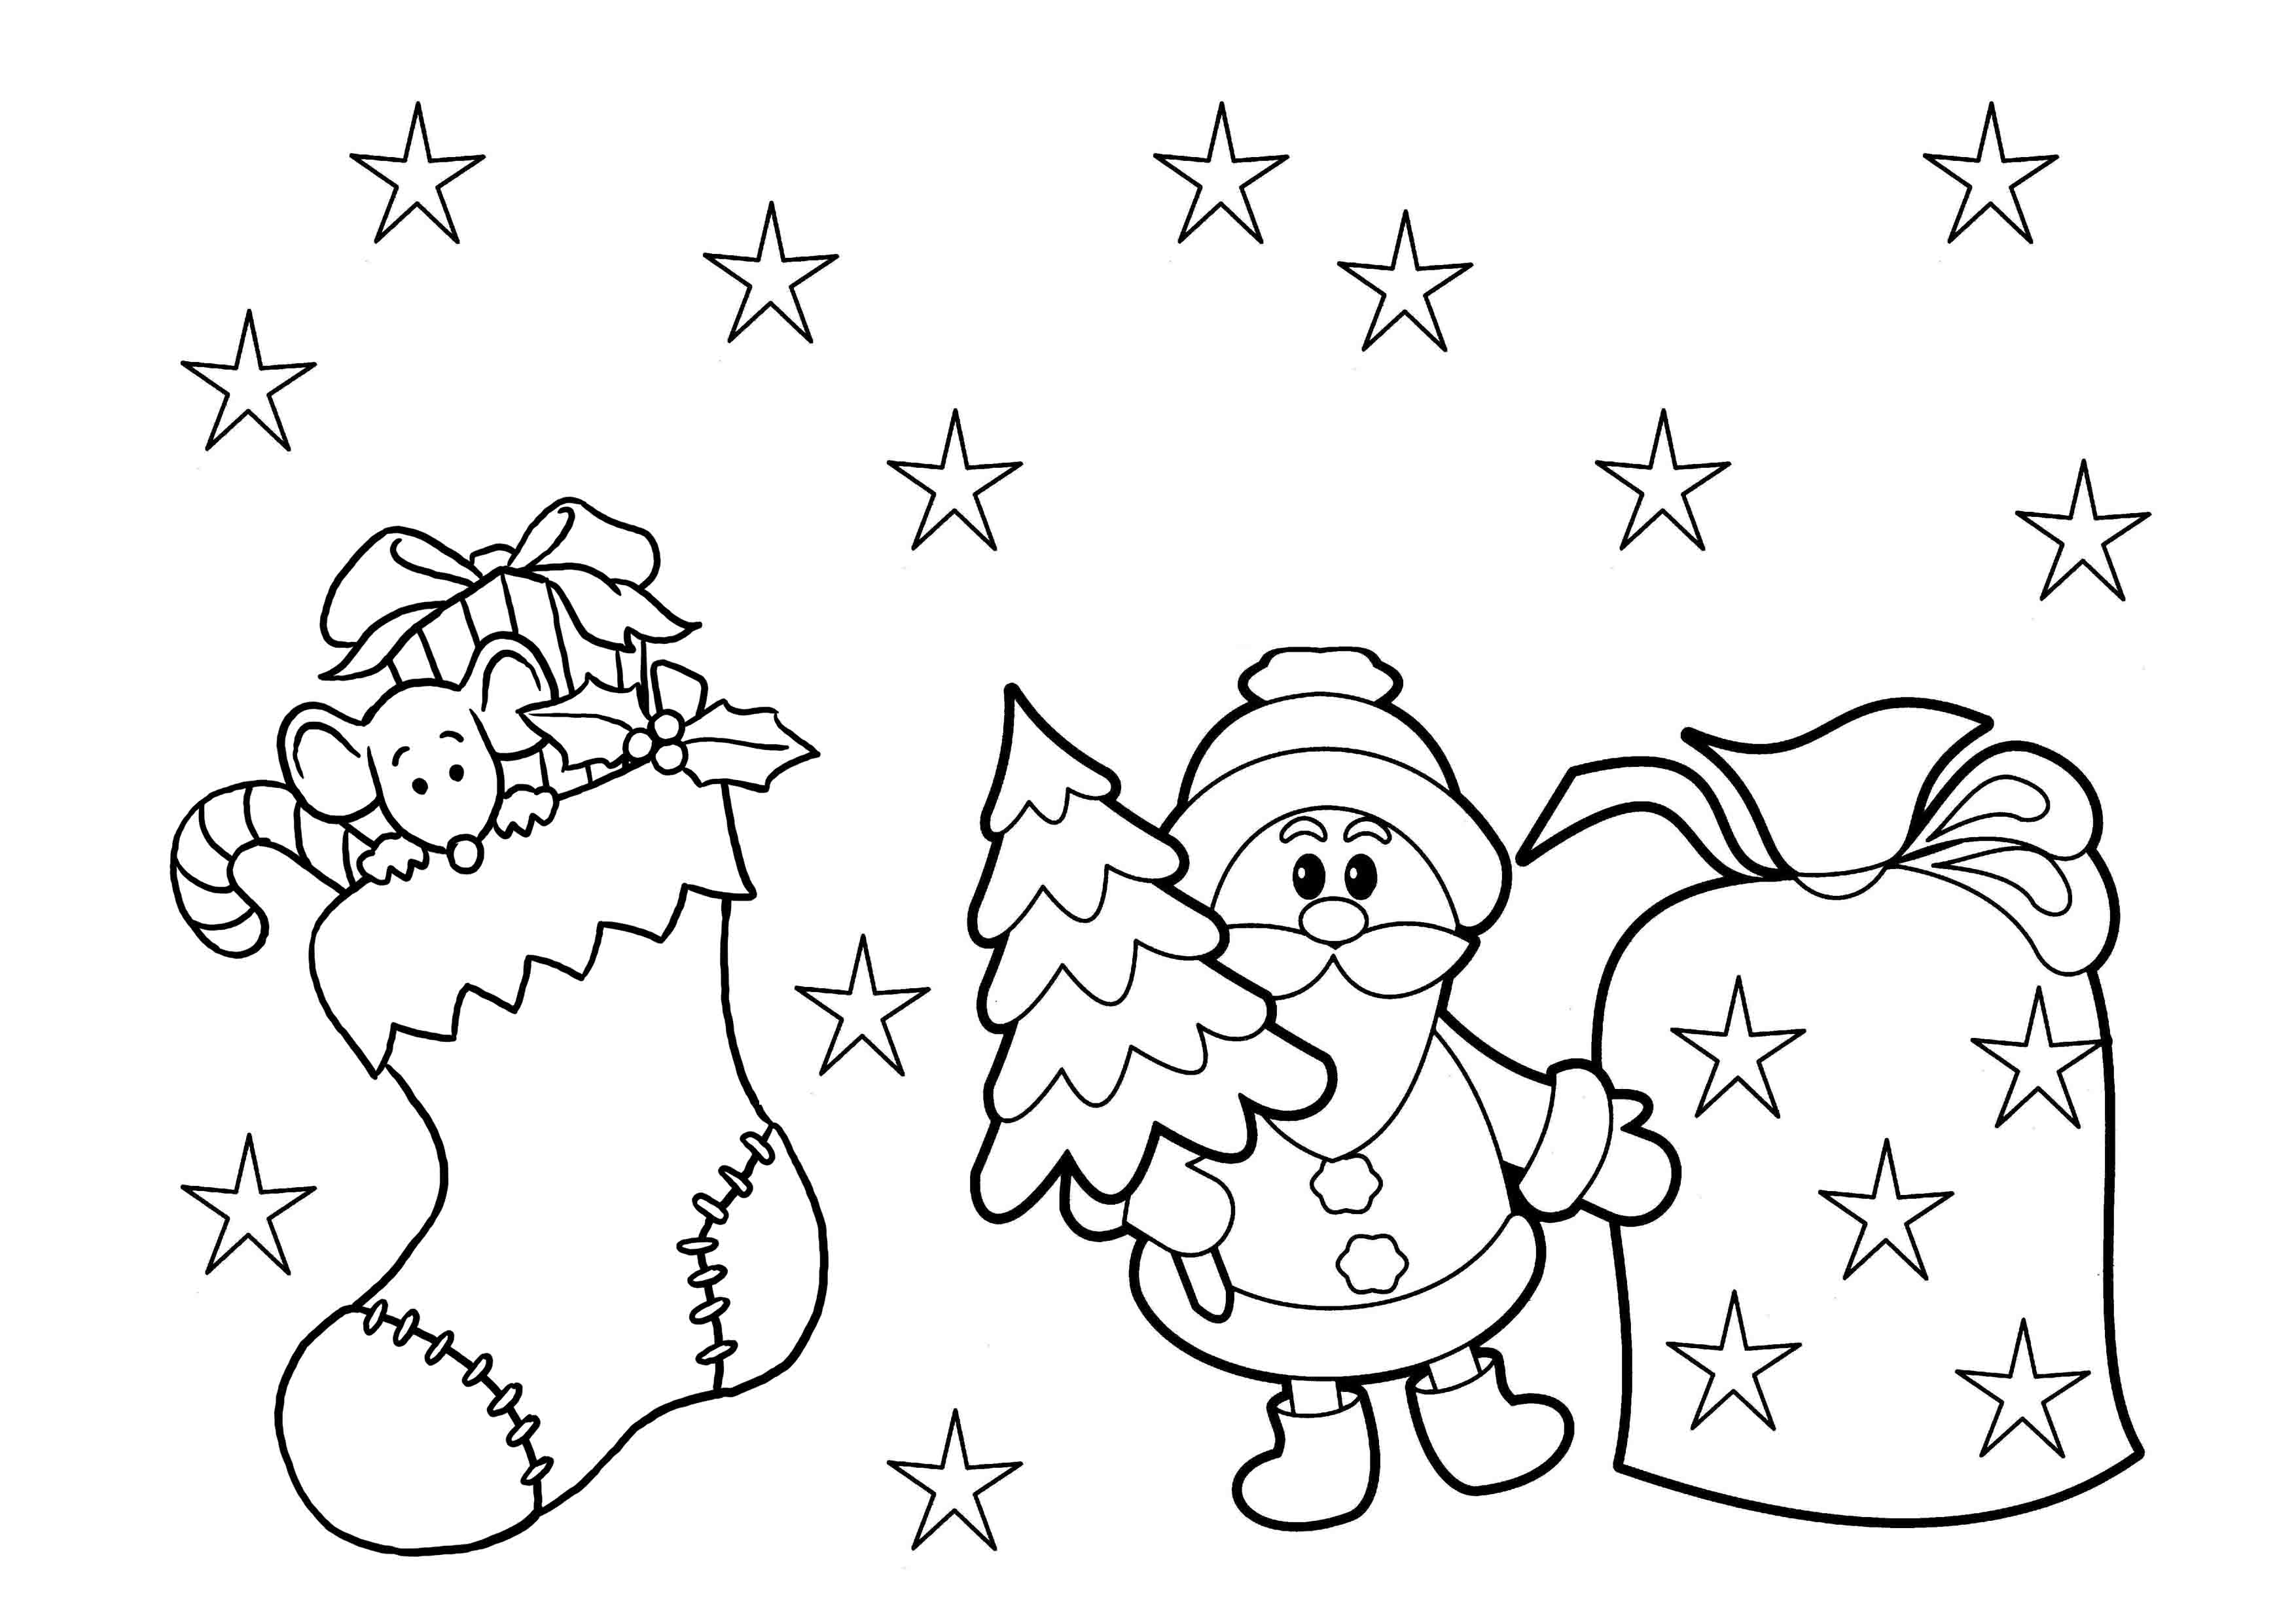 free printable coloring pages christmas 10 christmas coloring pages for kids tip junkie coloring free pages printable christmas